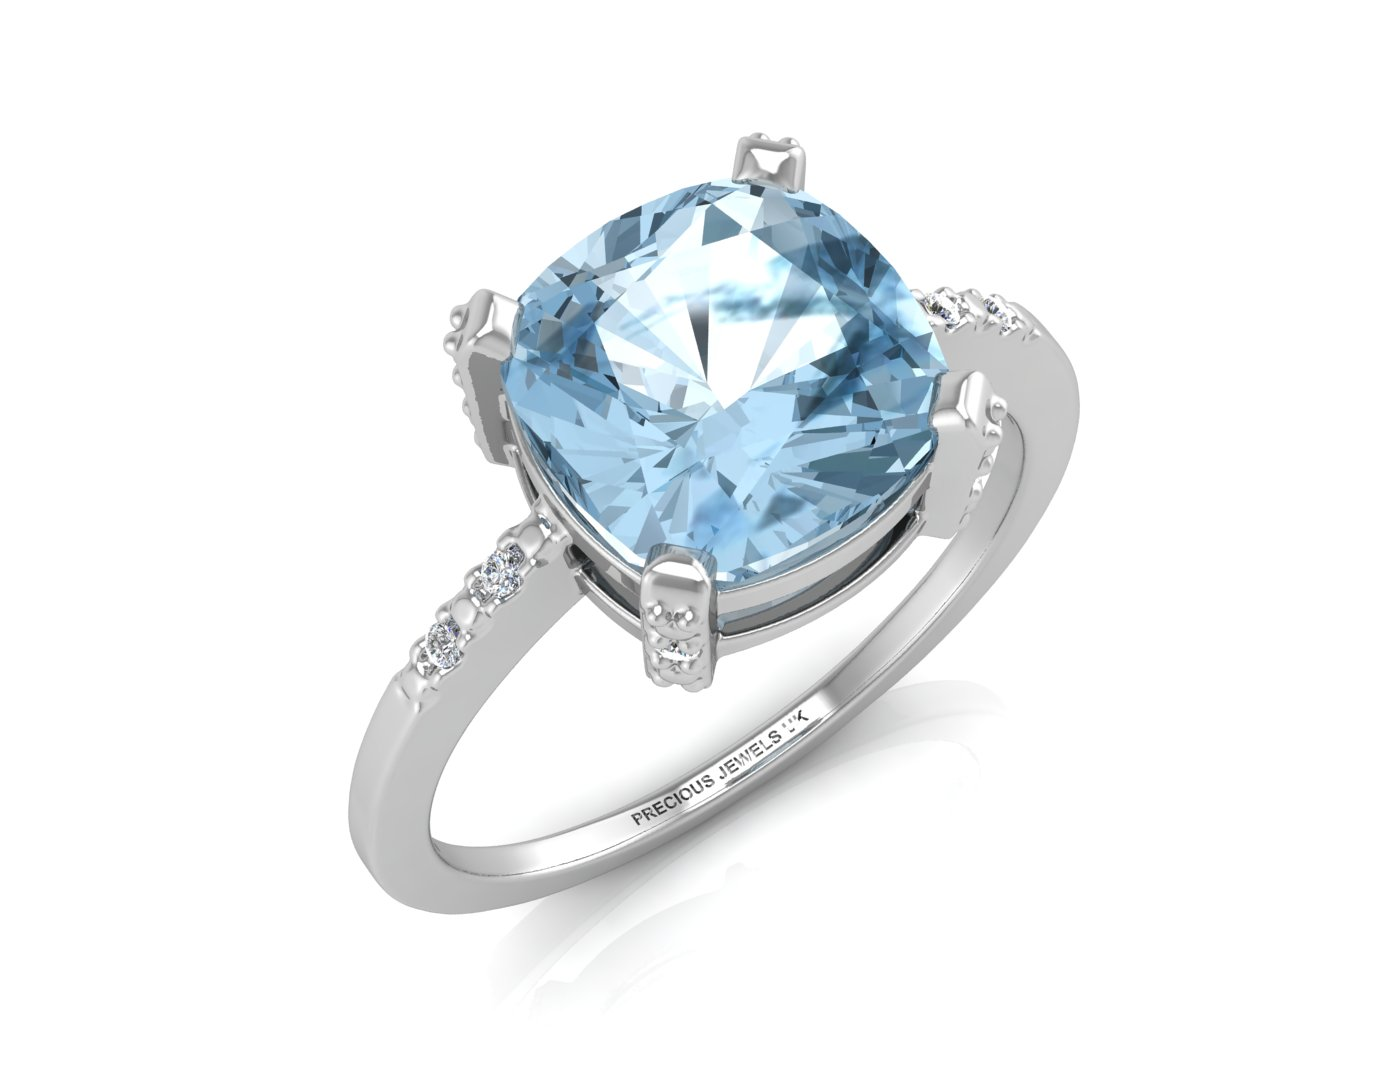 9ct White Gold Diamond And Blue Topaz Ring 0.04 Carats